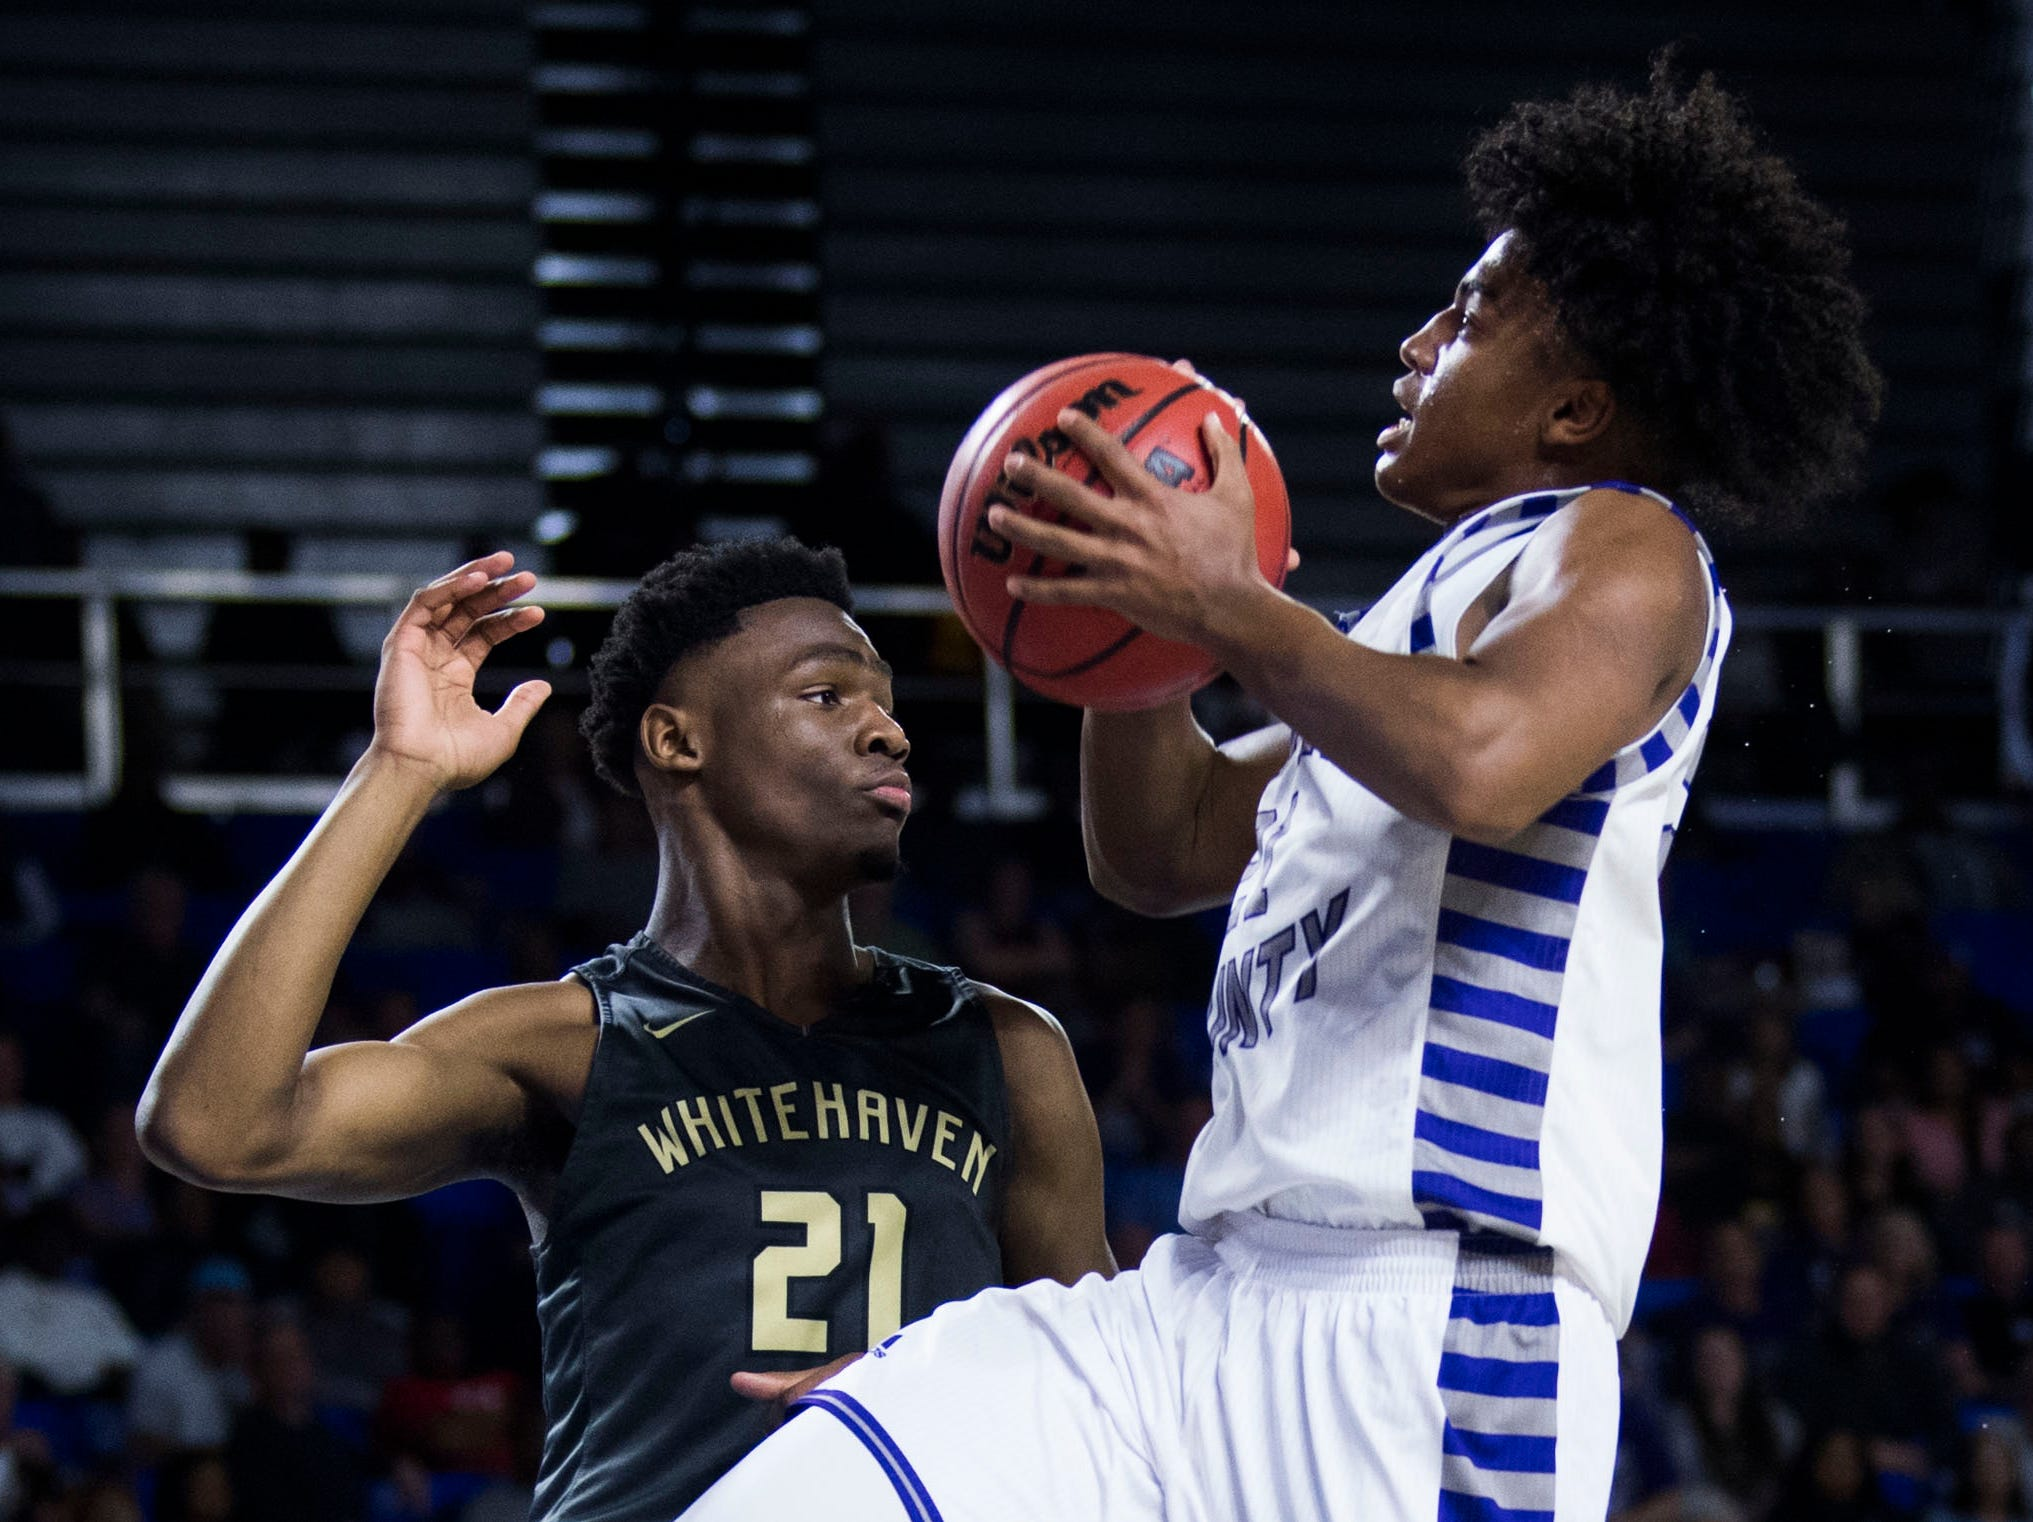 Sevier County's Cam Burden (21) takes a shot while defended by Whitehaven's Devine Owens (21) during a TSSAA AAA state quarterfinal game between Sevier County and Whitehaven at the Murphy Center in Murfreesboro, Wednesday, March 13, 2019.